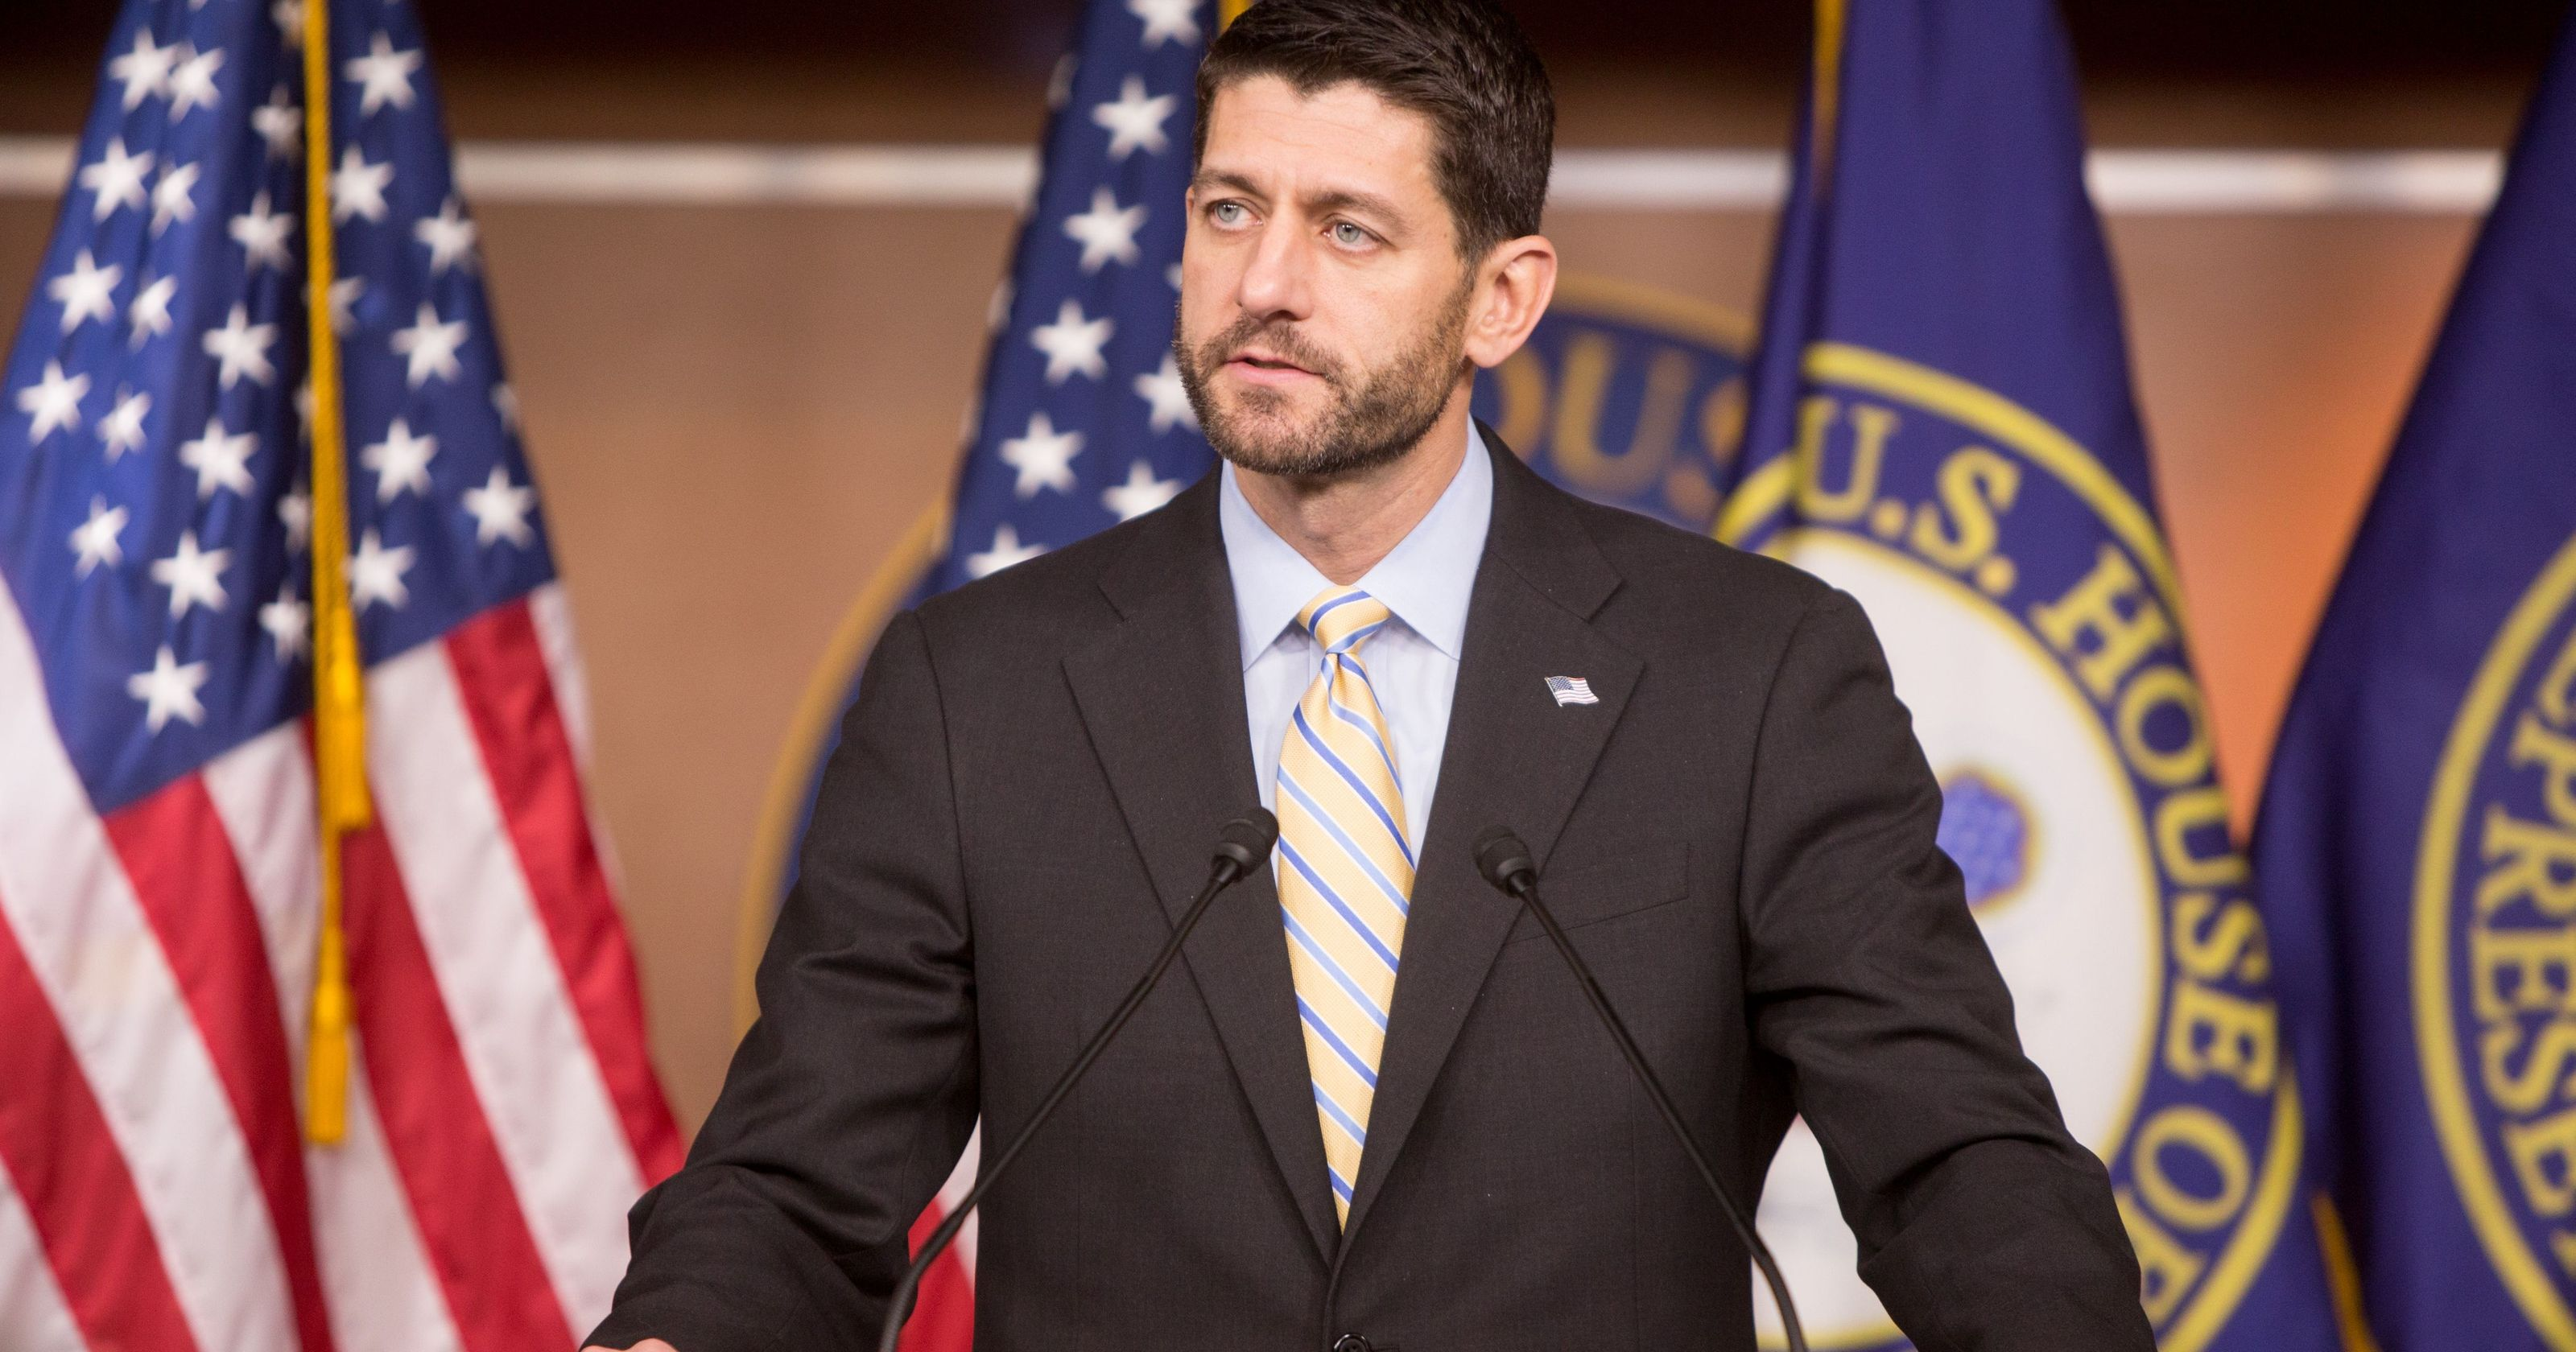 Paul Ryan Speaking (with beard)